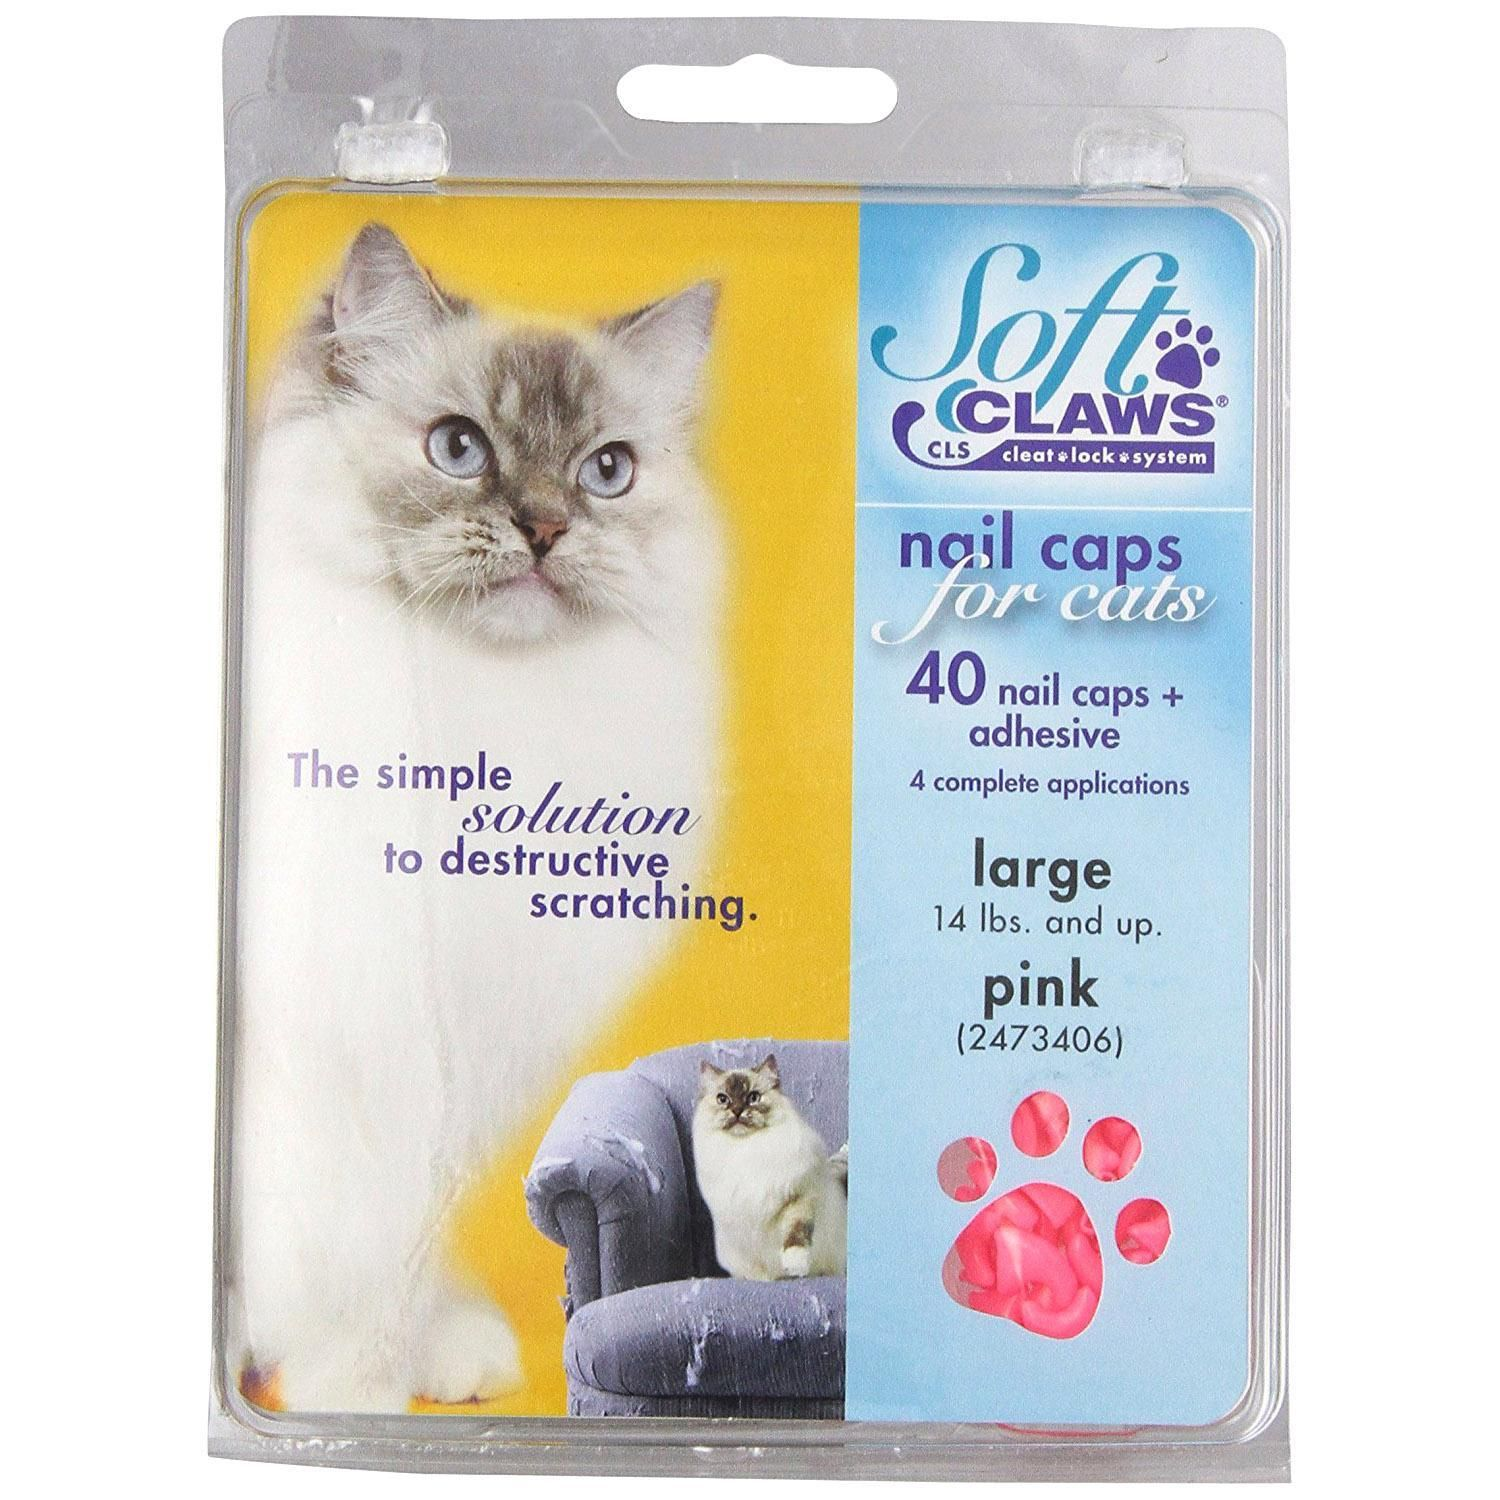 Check out this great offer I got! shopping Cat nail